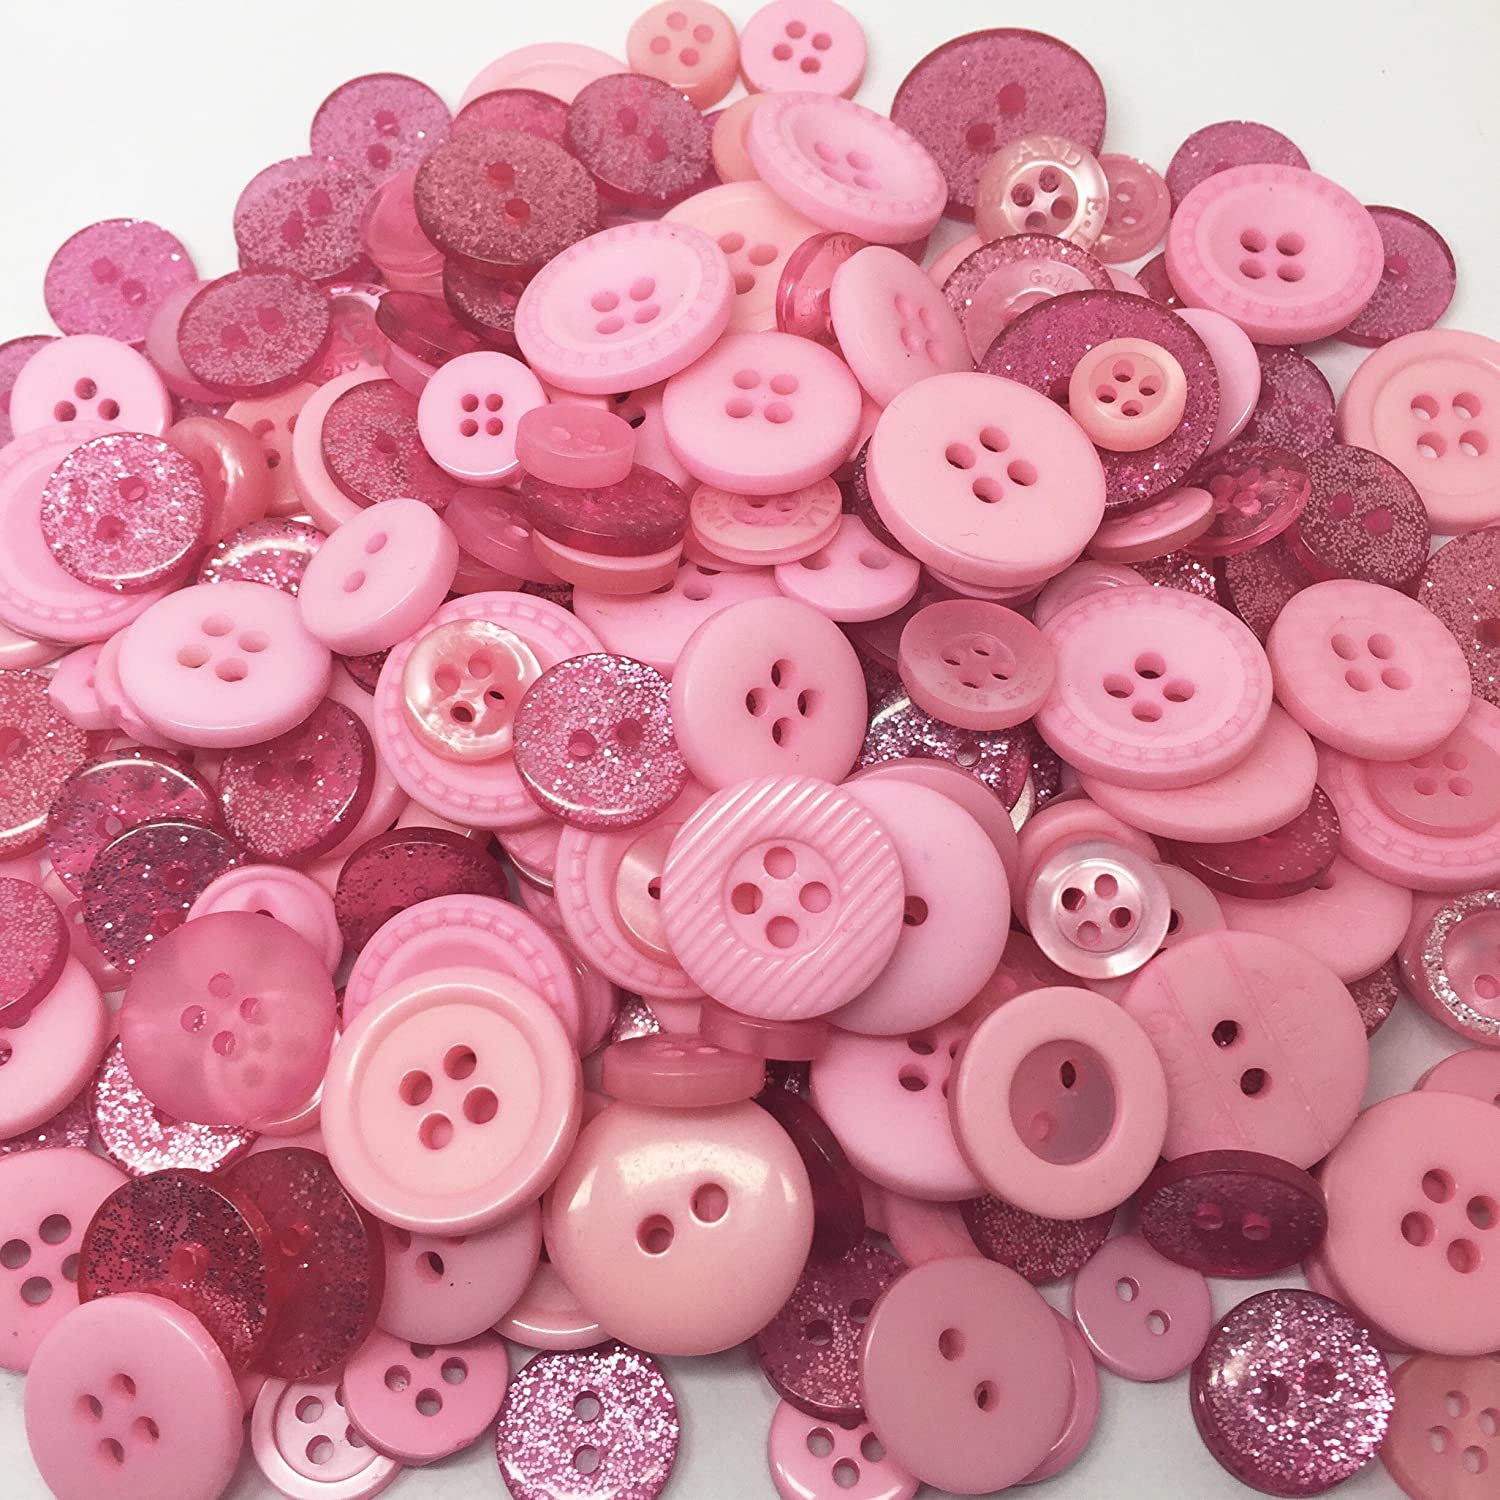 Roseys Craft Shop Light Blue Exclusive Glitter Deluxe Embellishment Button Collection-100g Of Crafty Buttons.11 Ranges.